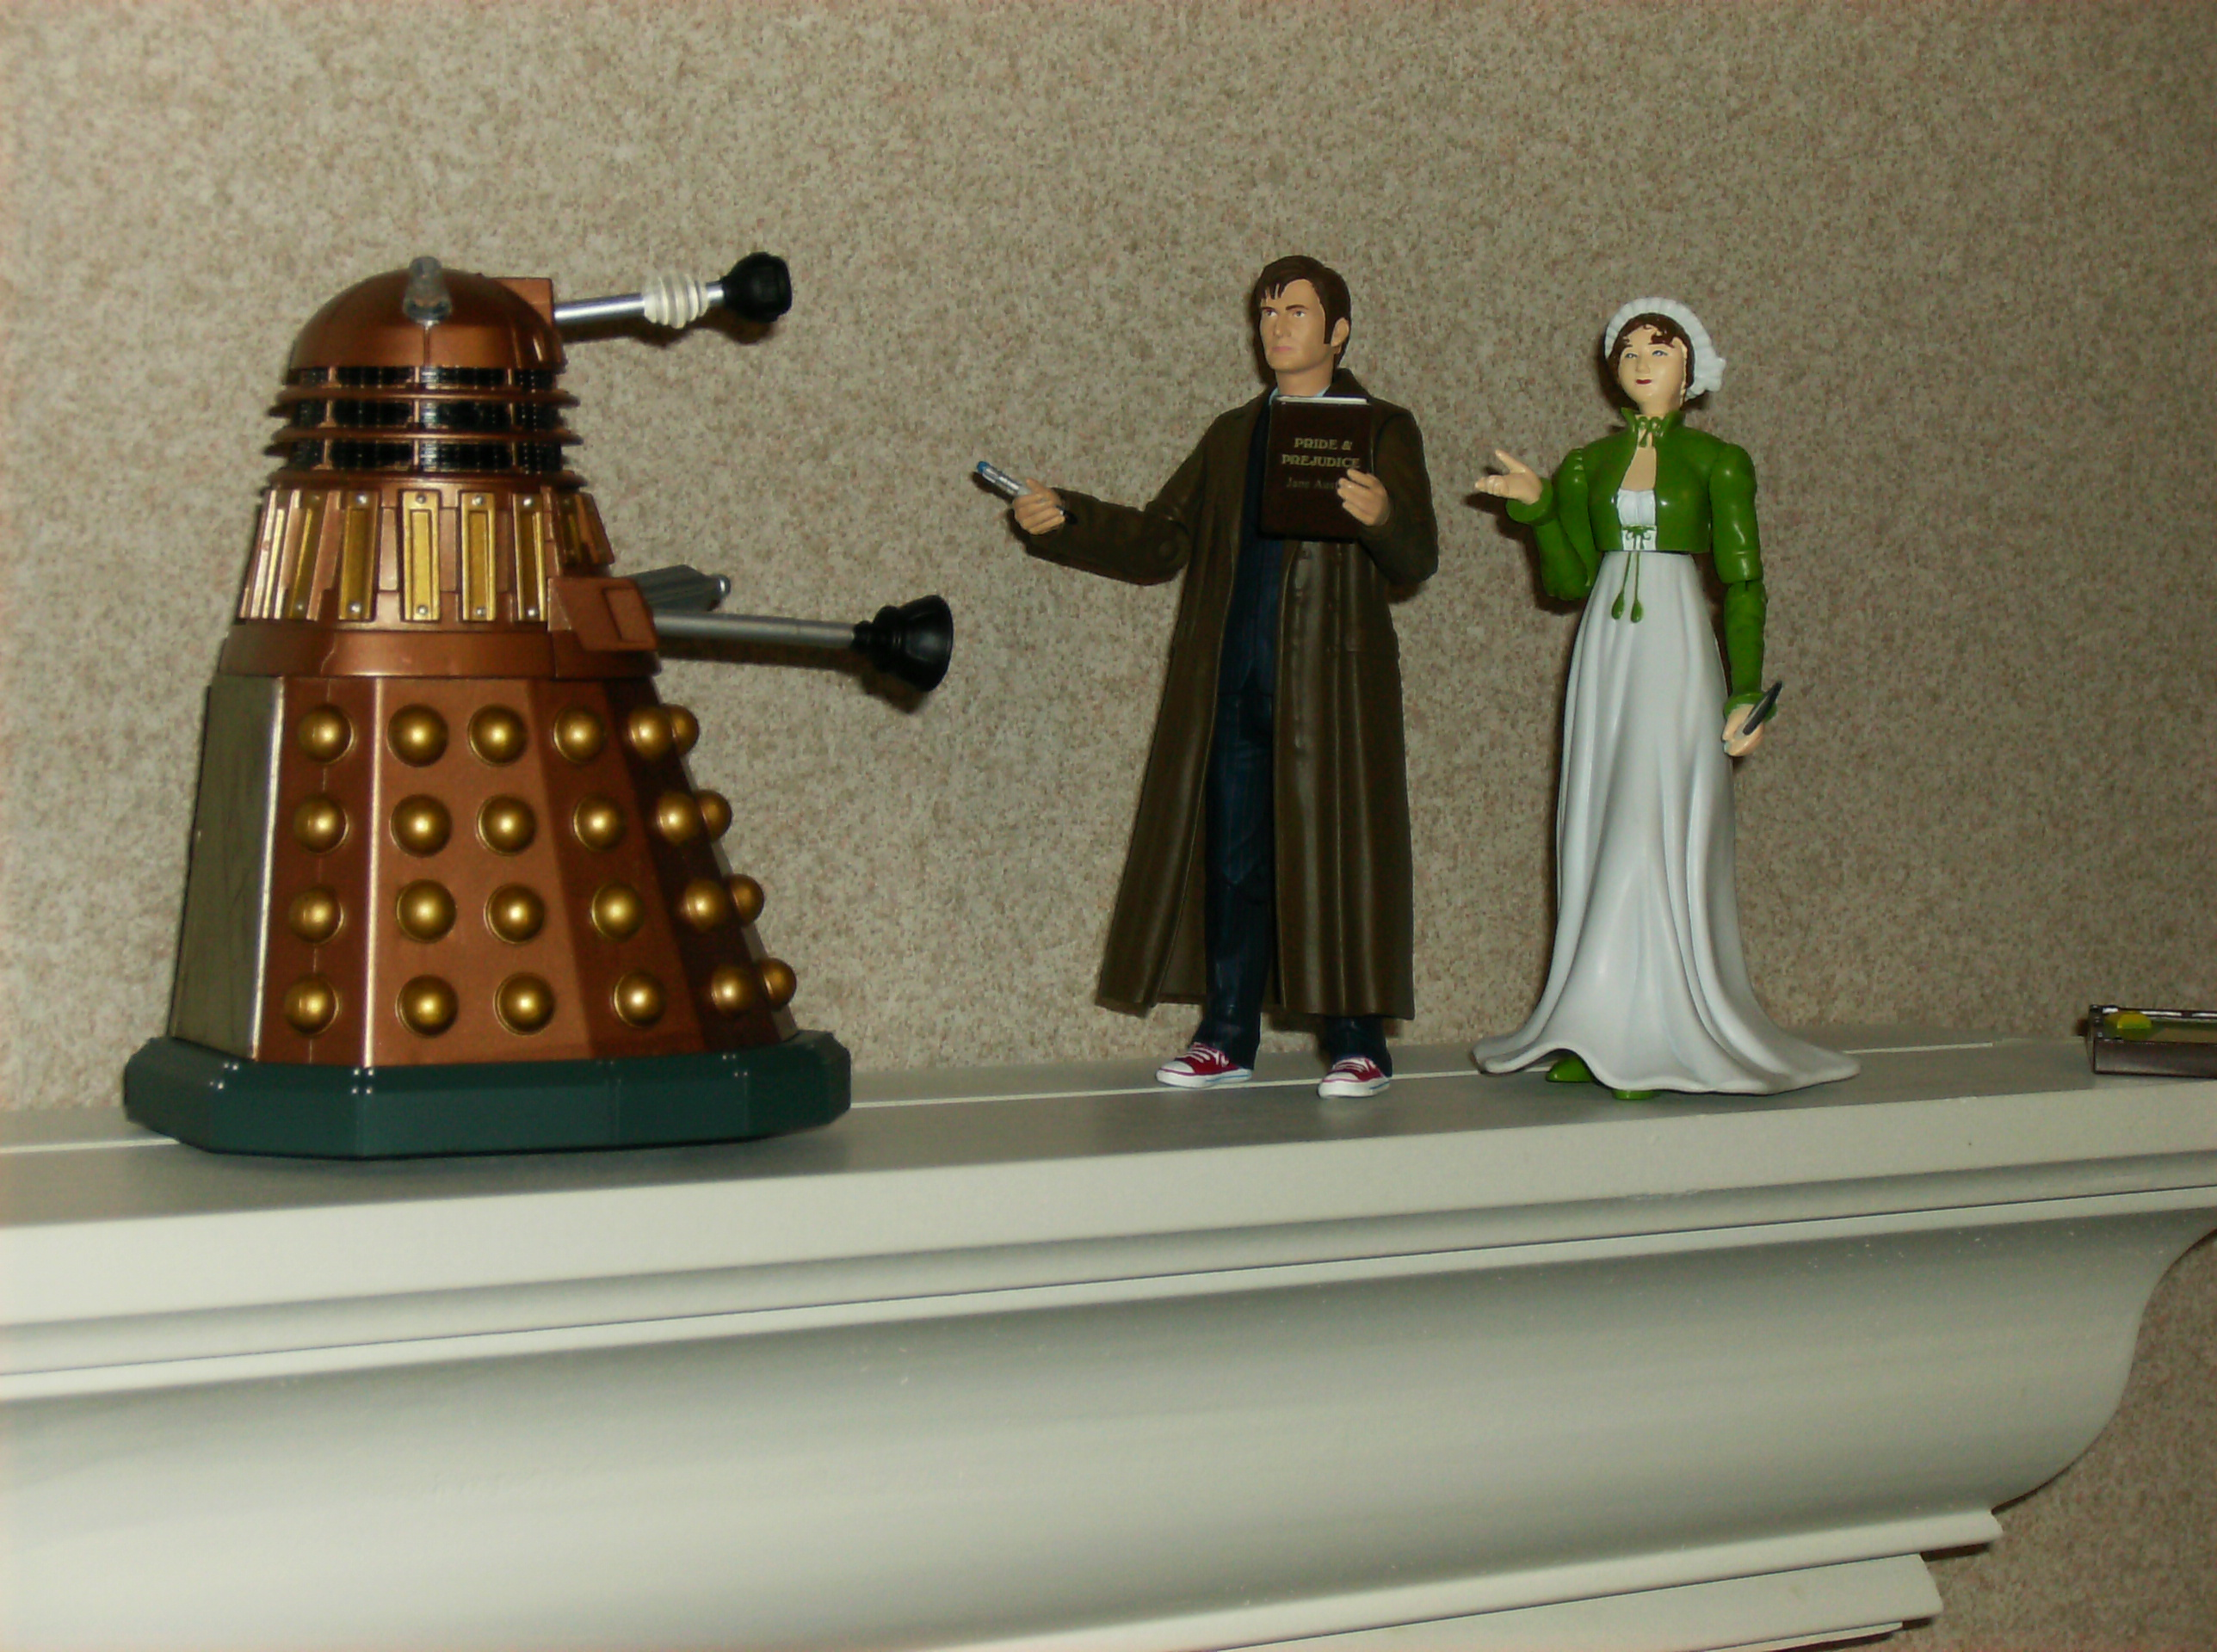 dalek attacks